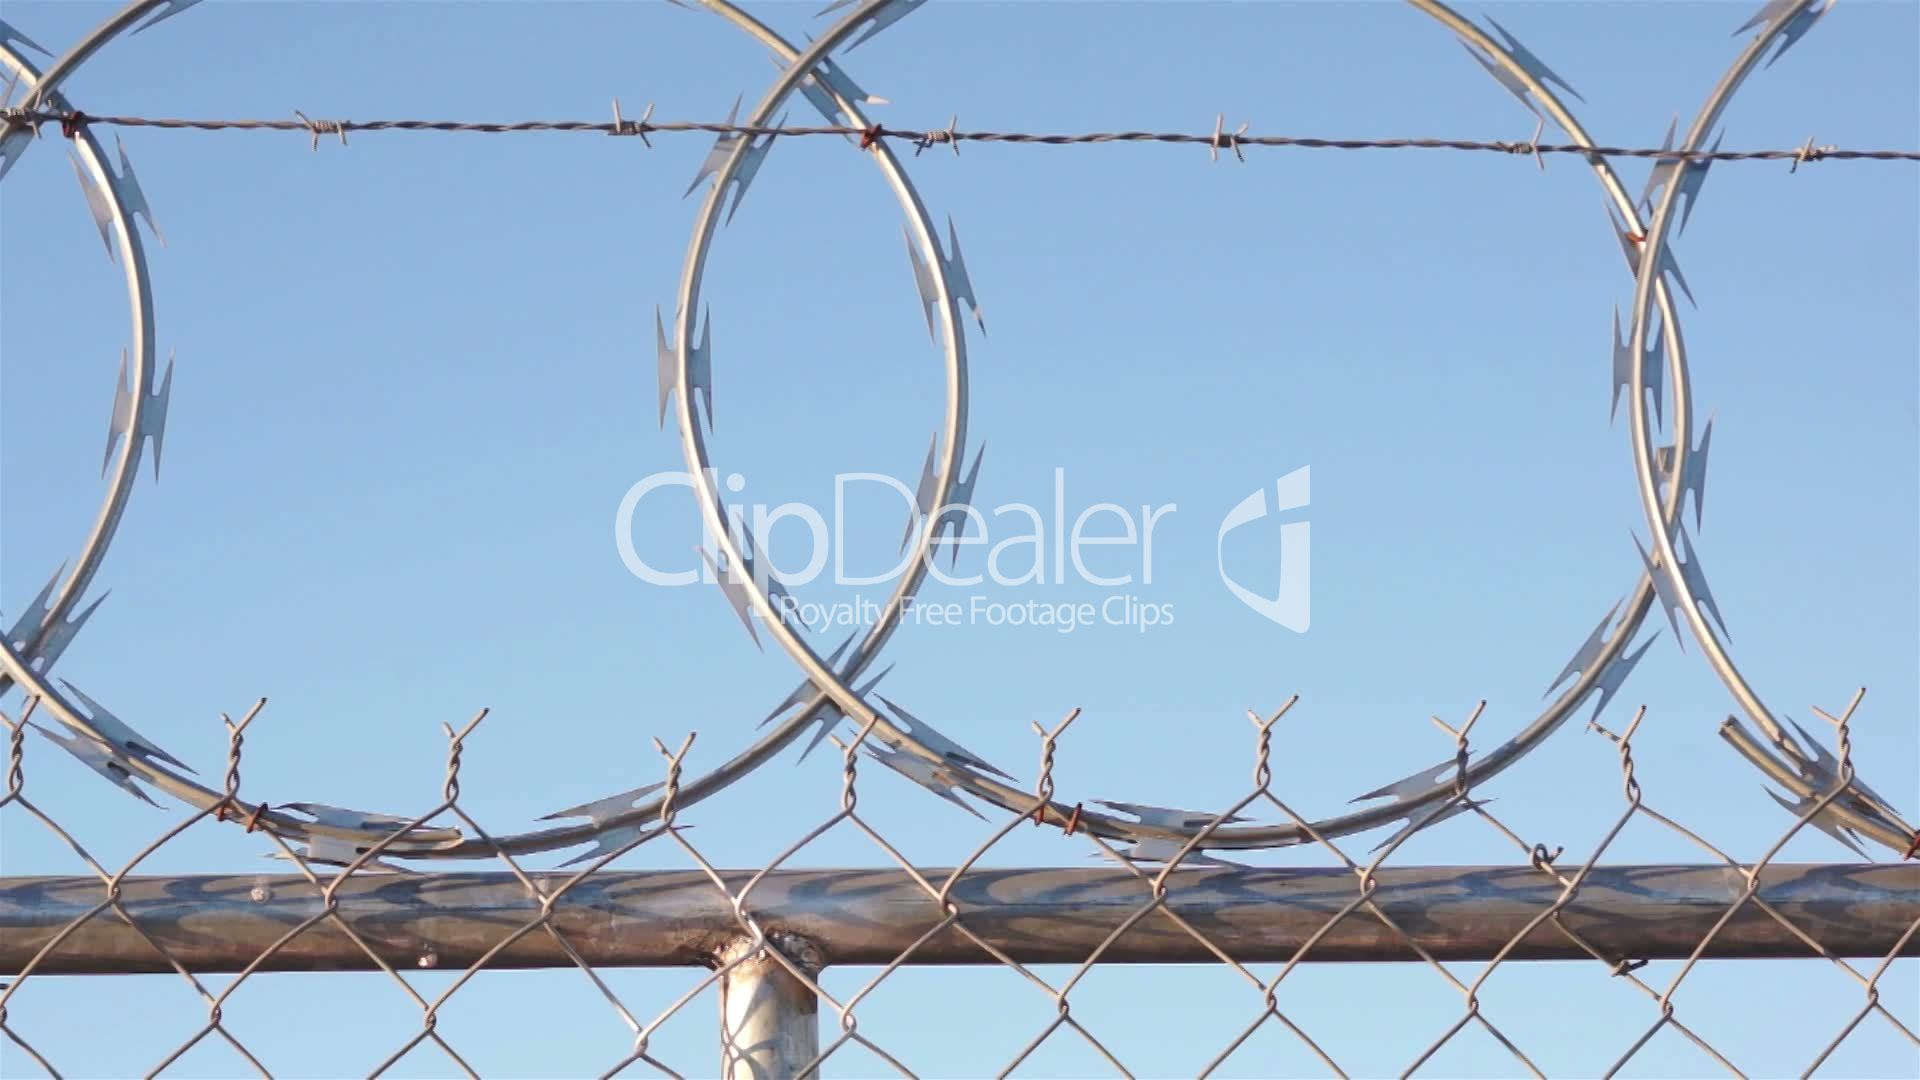 Man Climbing Razor Wire Fence: Royalty-free video and stock footage